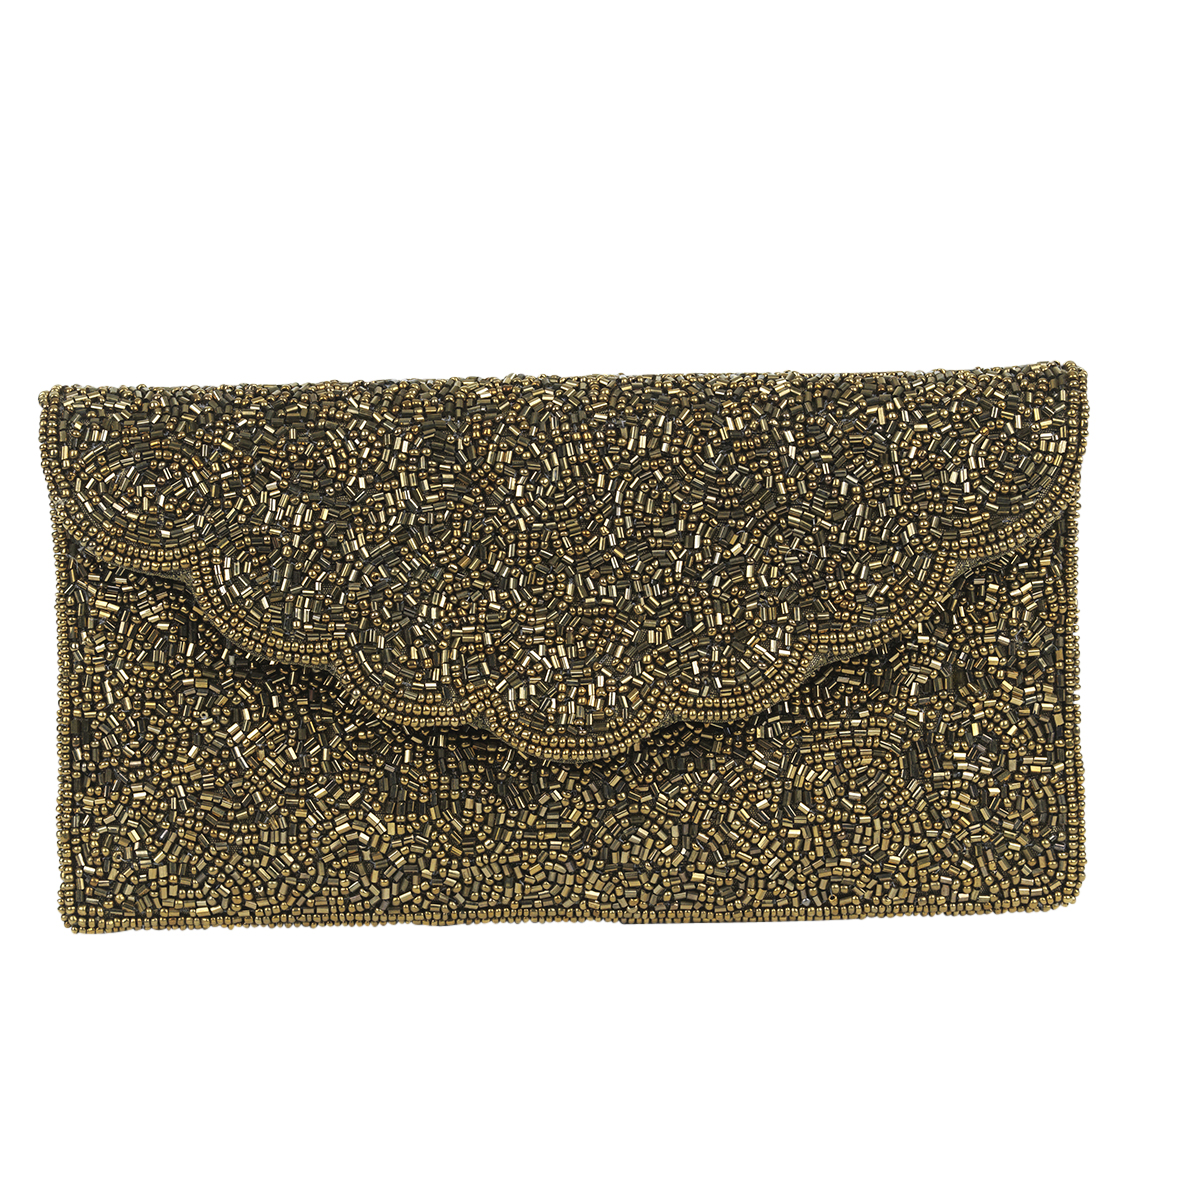 The Moshi Clutch Lauren